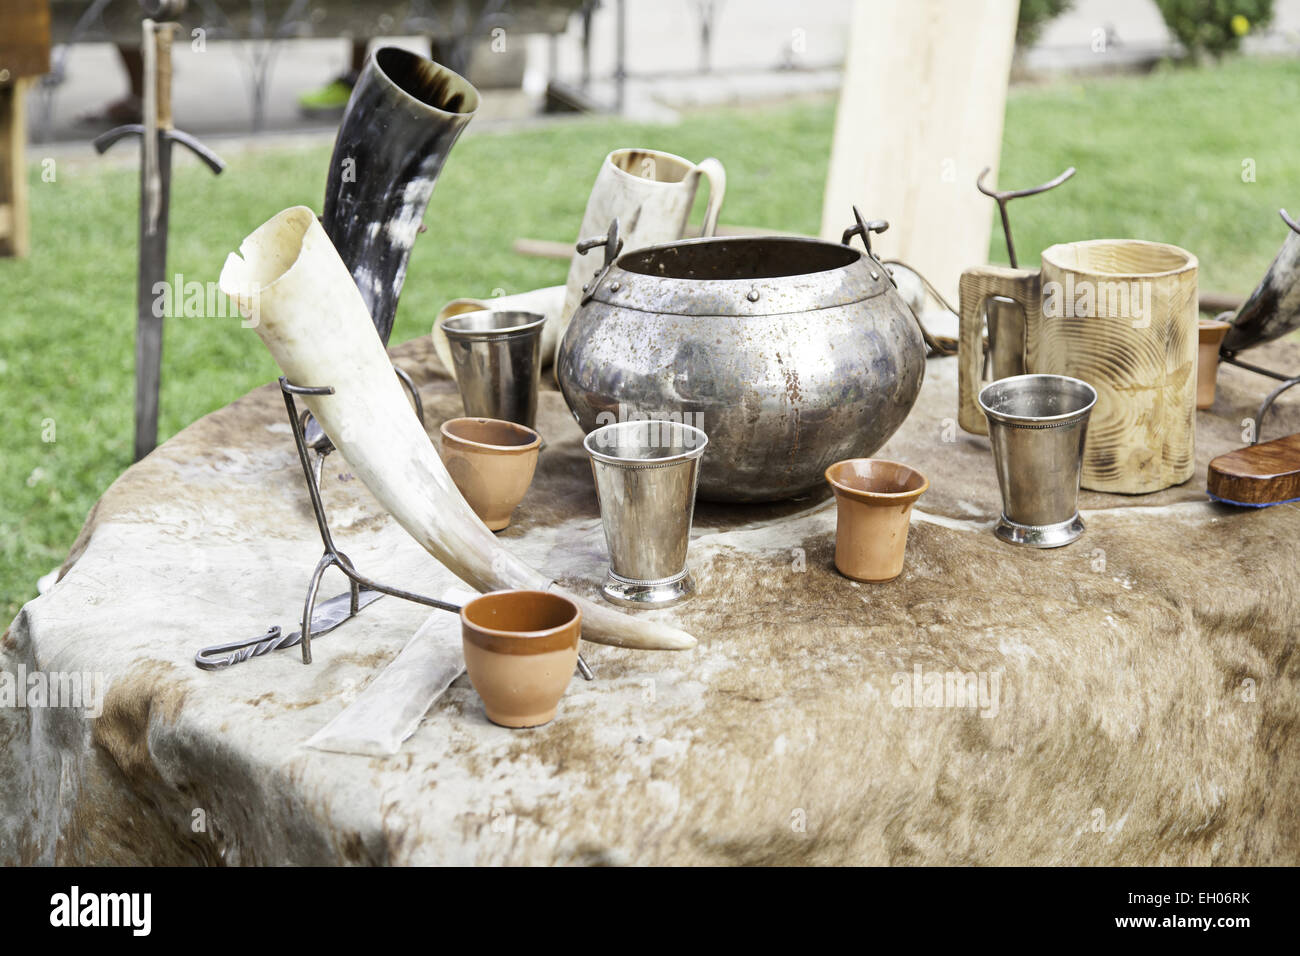 Ancient medieval bowls, detail of old containers - Stock Image